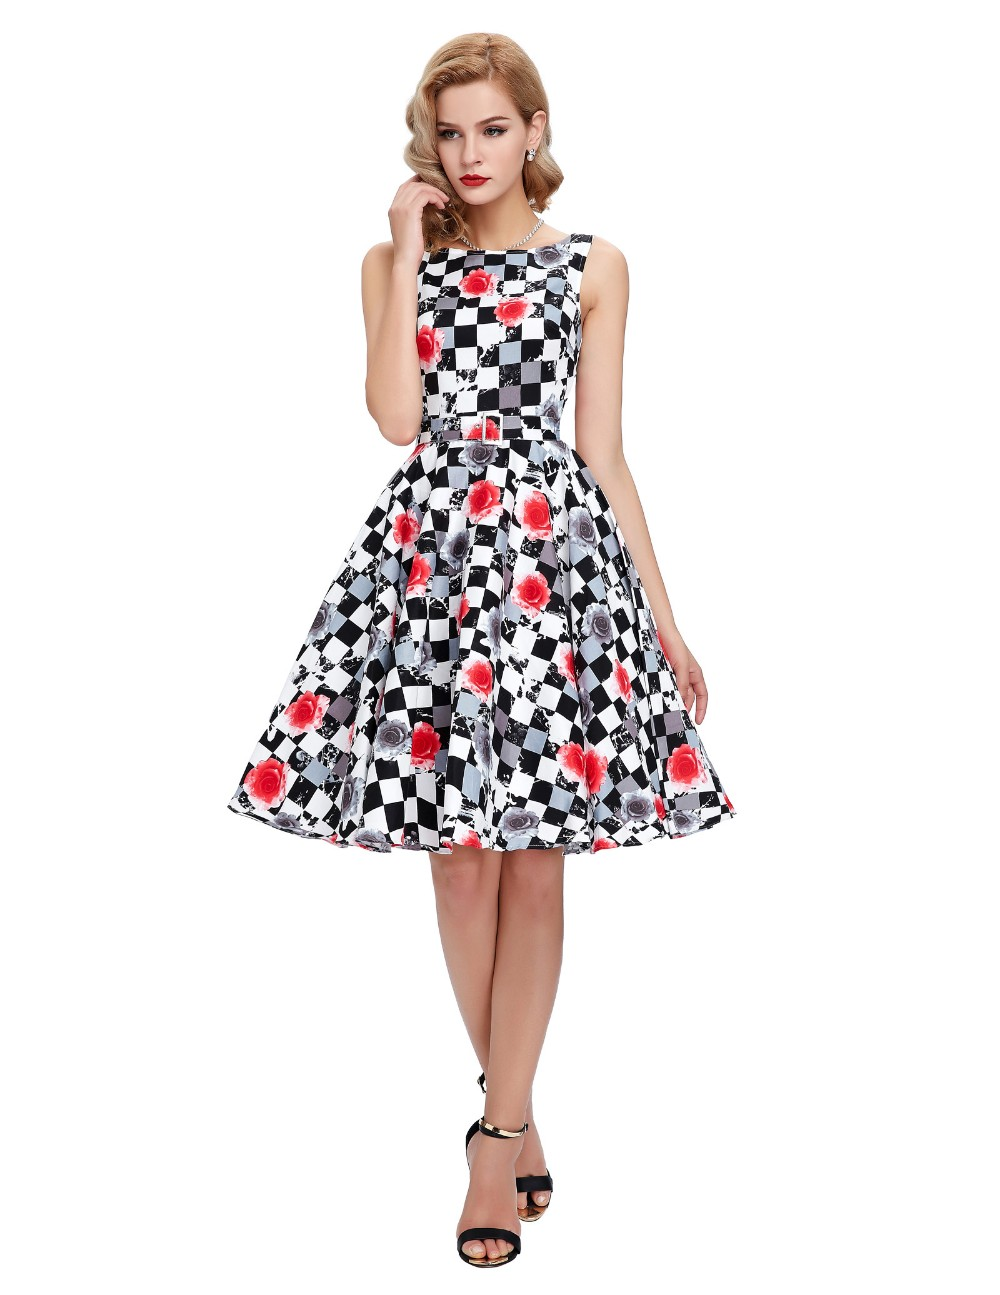 e7f8be2891f4b Belle Poque Women Summer Dress 2017 Rockabilly Audrey Hepburn Tunic robe  Casual Clothing Vestidos 50s Vintage Plaid Dresses -in Dresses from Women's  ...